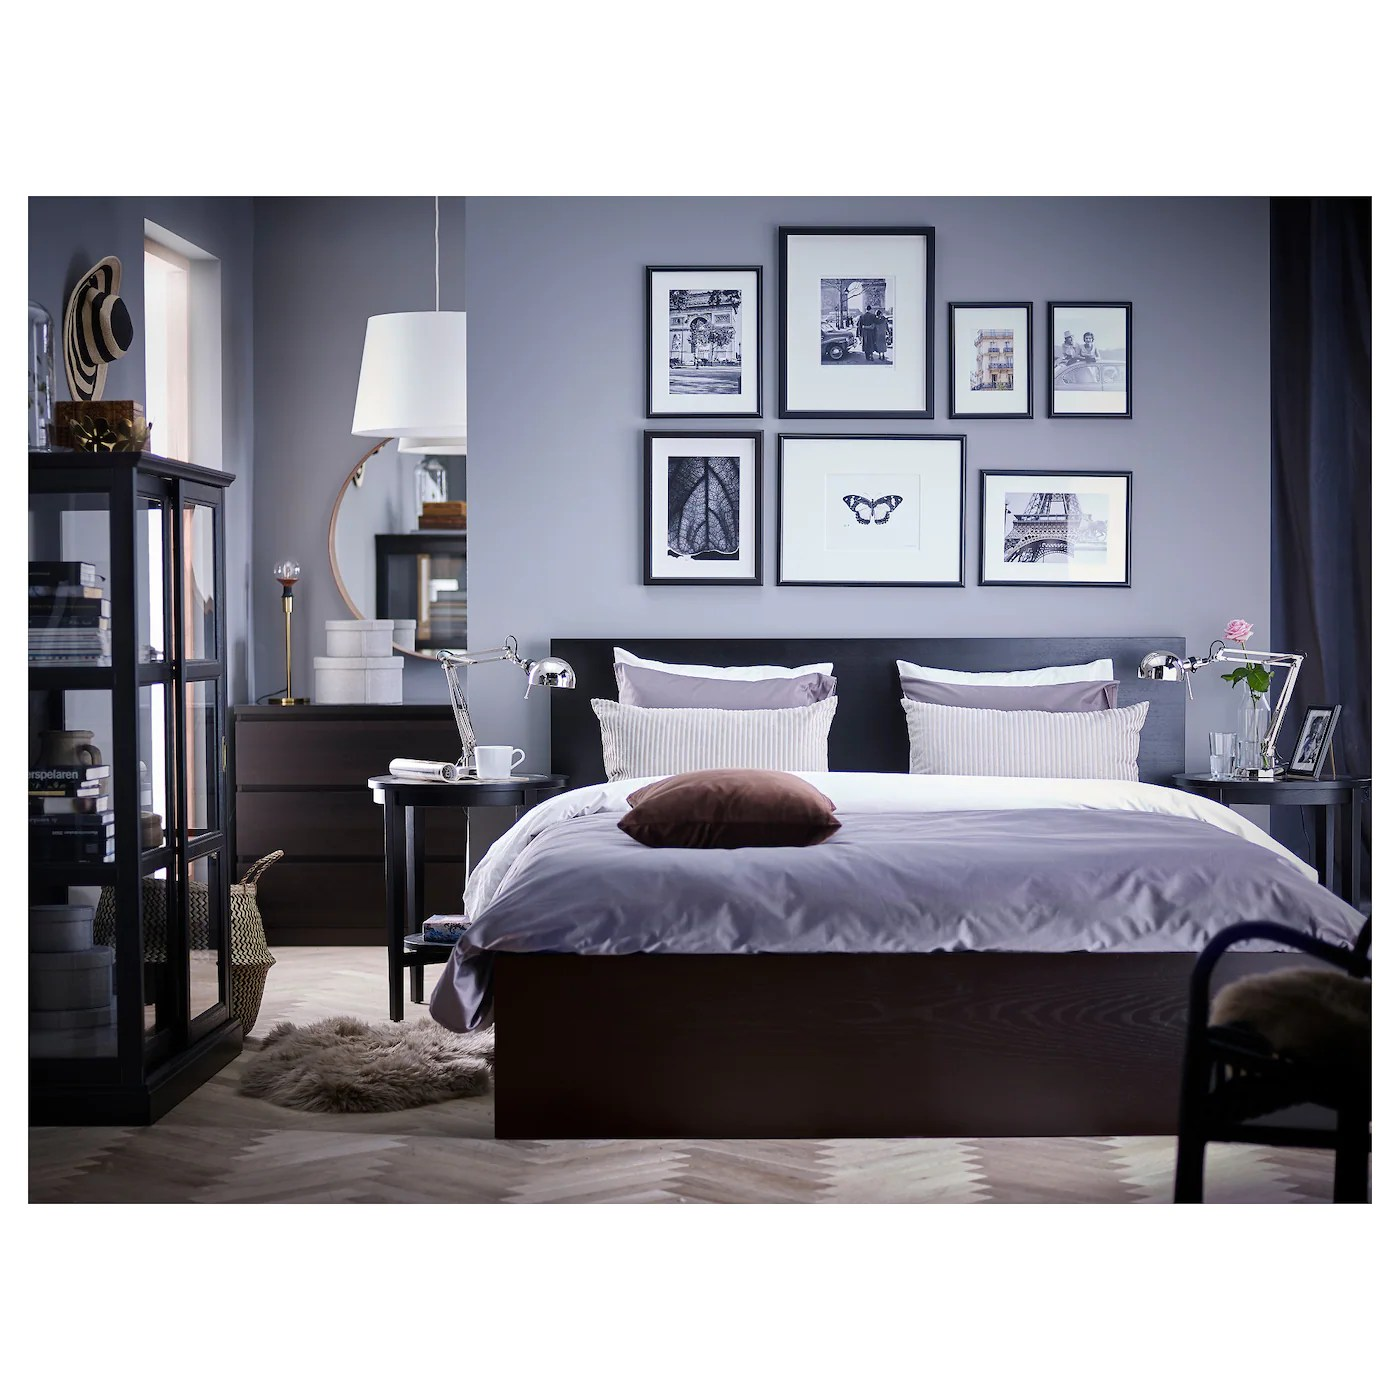 Malm Structure De Lit Haut Brun Noir Grand Deux Places Site Web Officiel Ikea